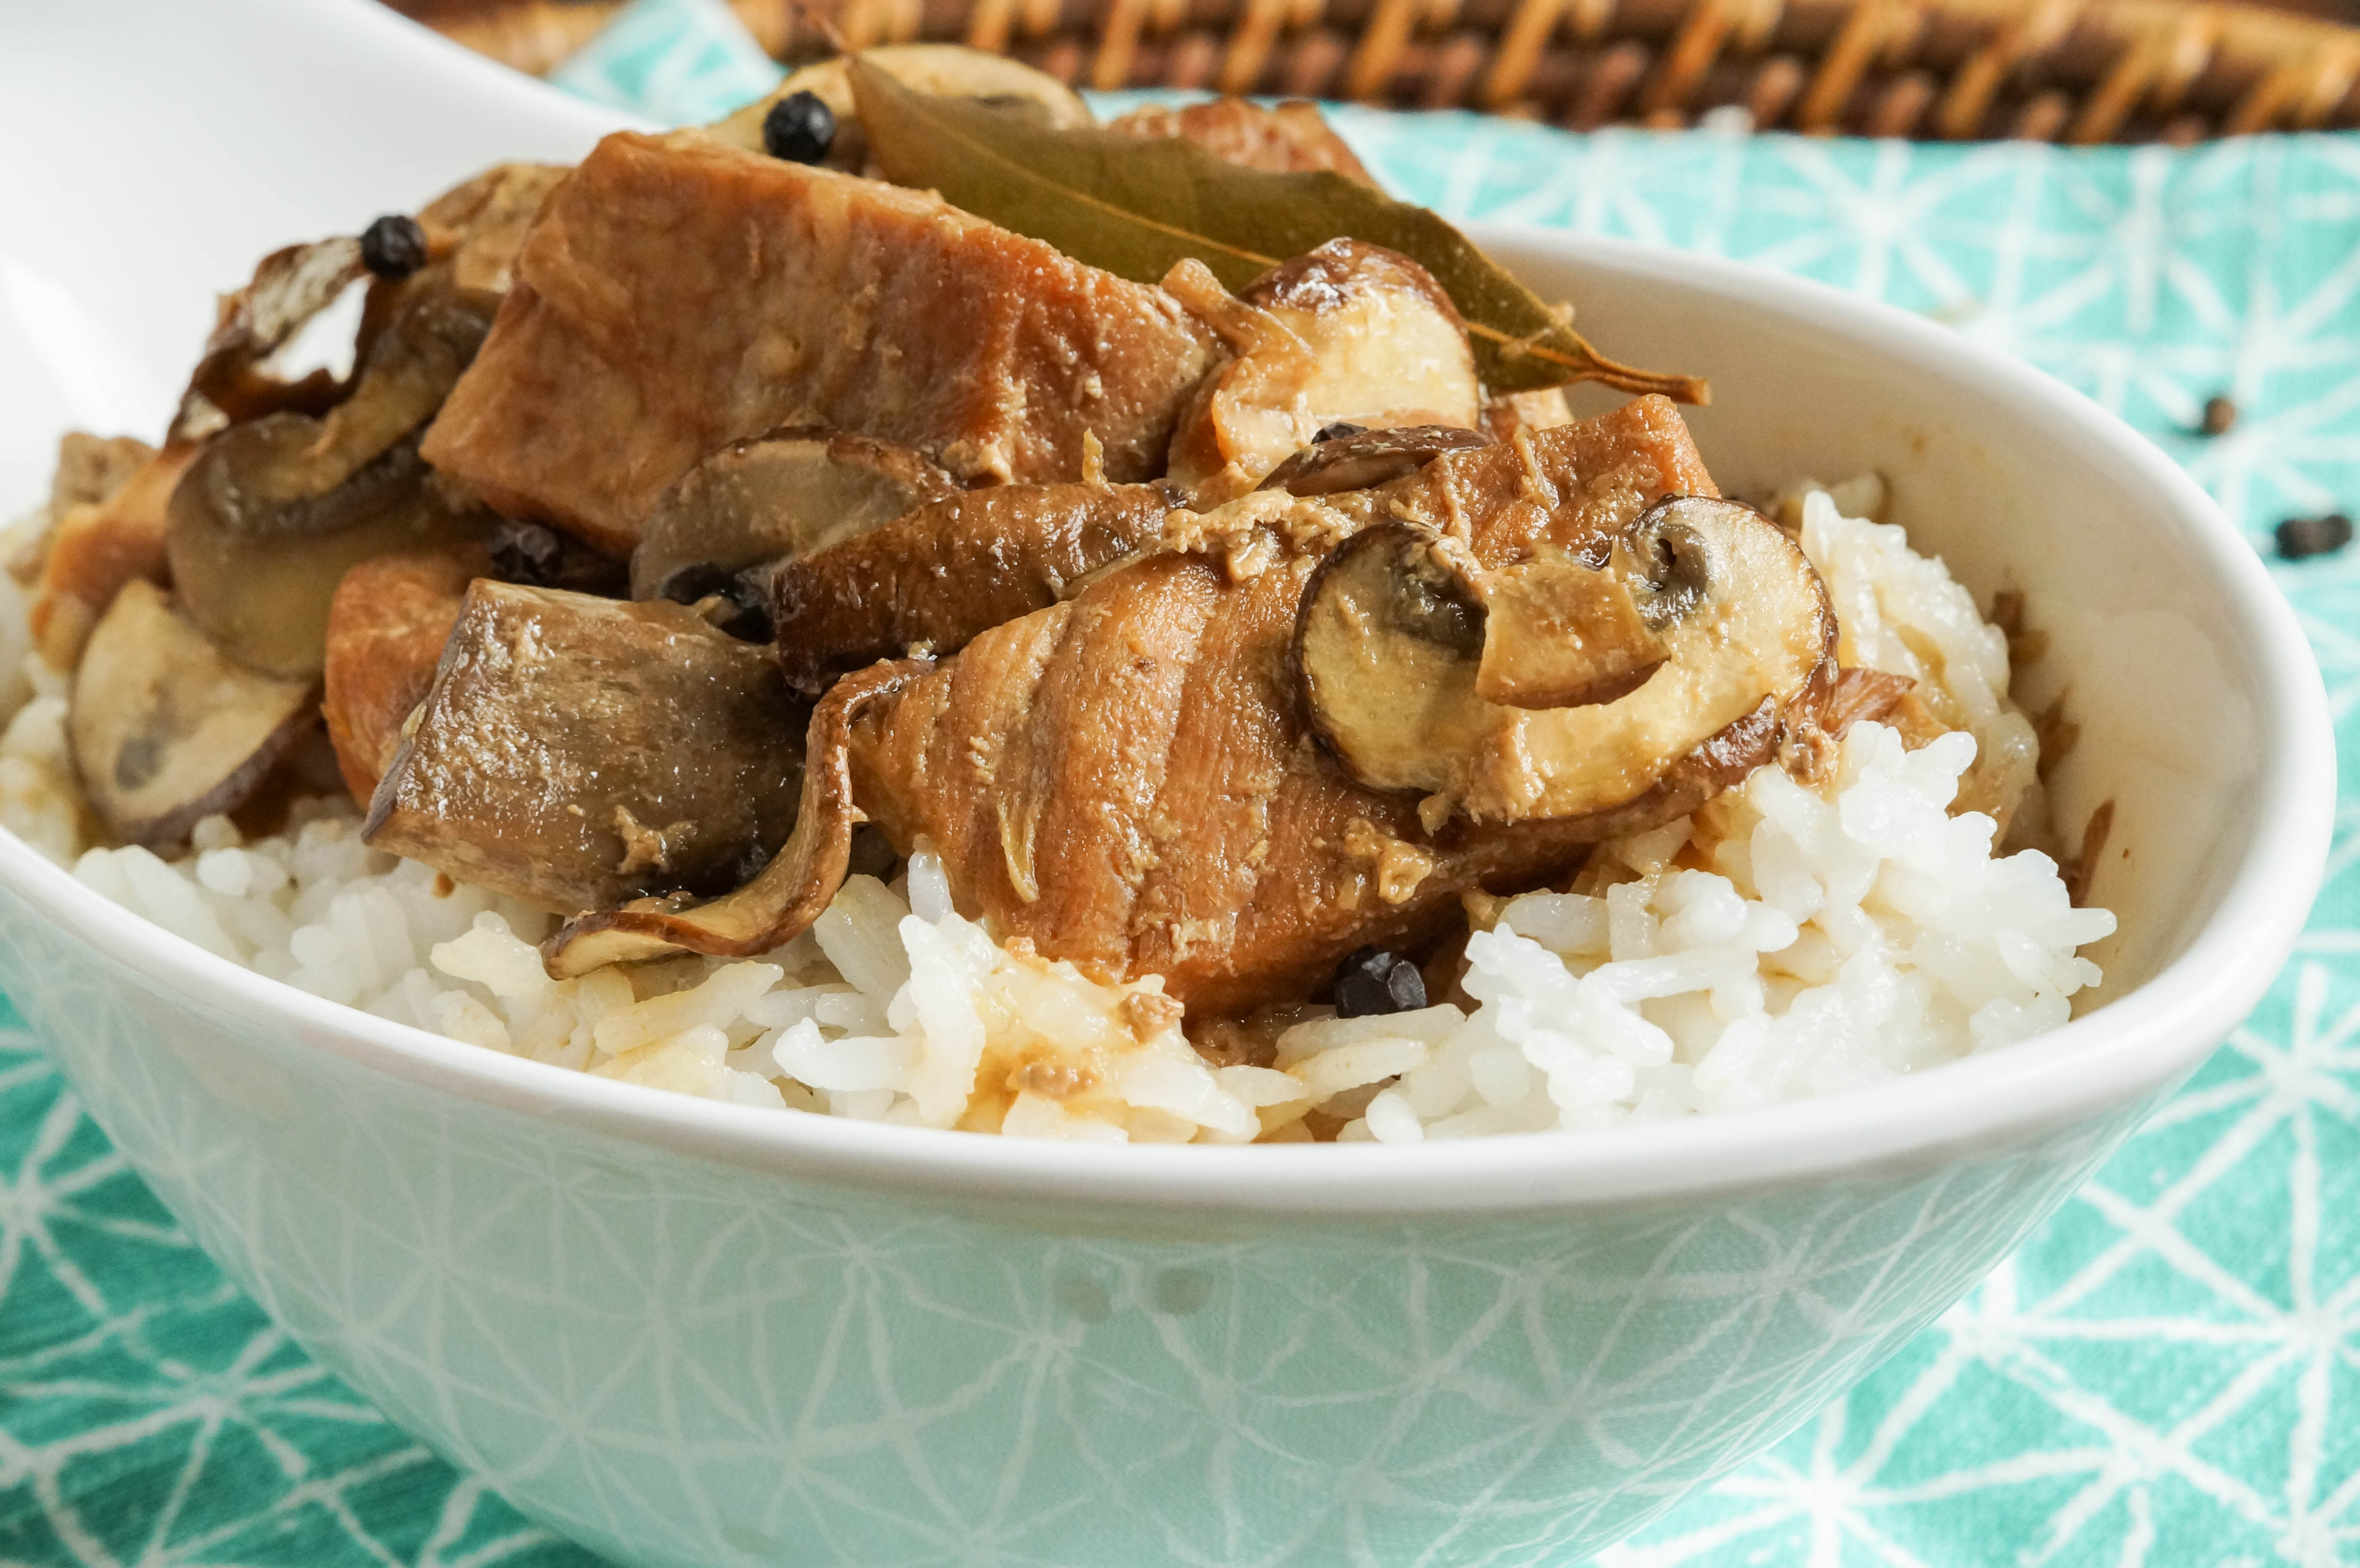 Chinese style pork adobo tara 39 s multicultural table for Adobo filipino cuisine